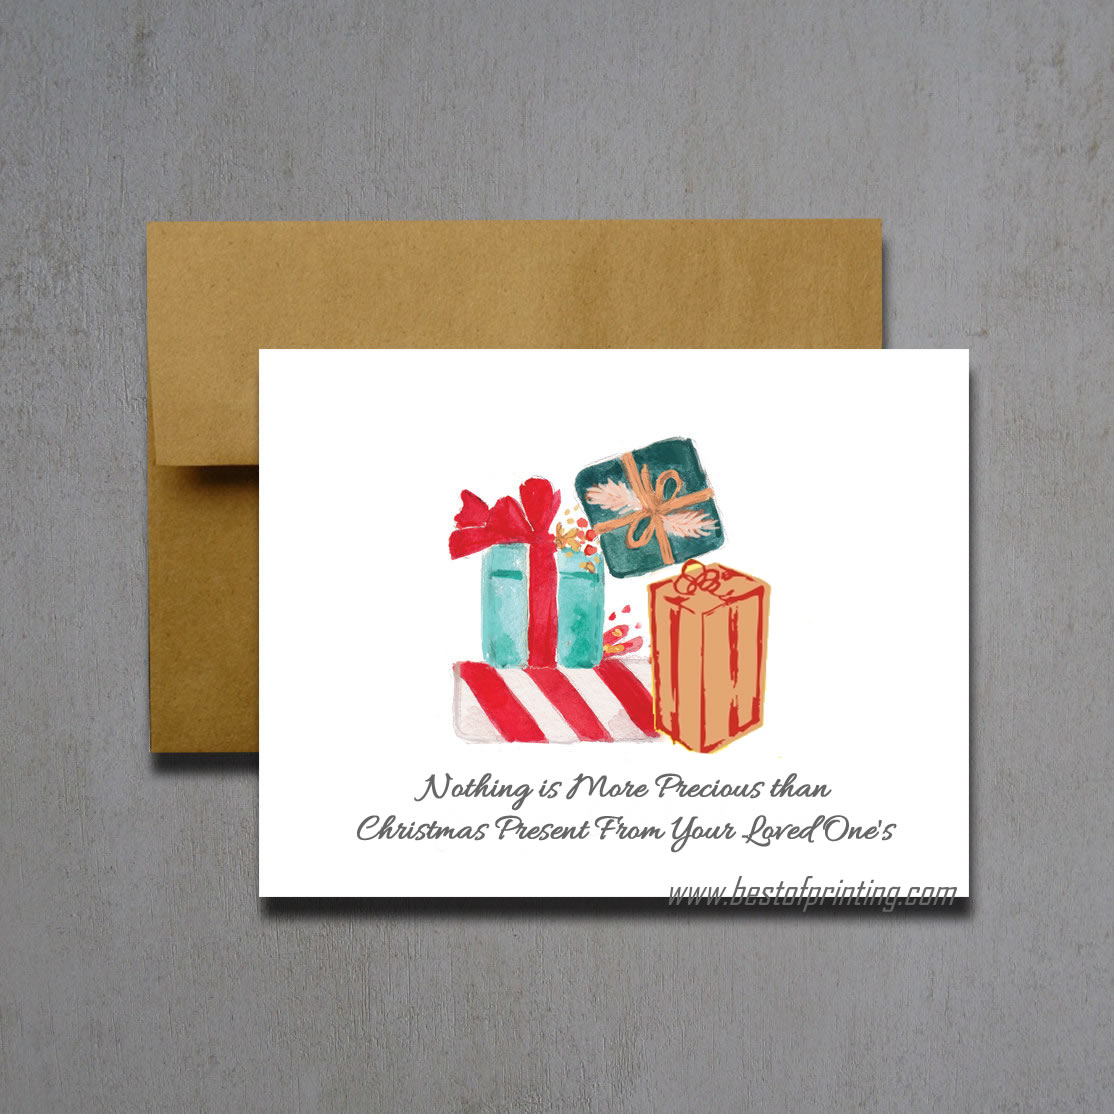 Custom Greeting Cards NYC | Funny Cards Printing - BestOfPrinting